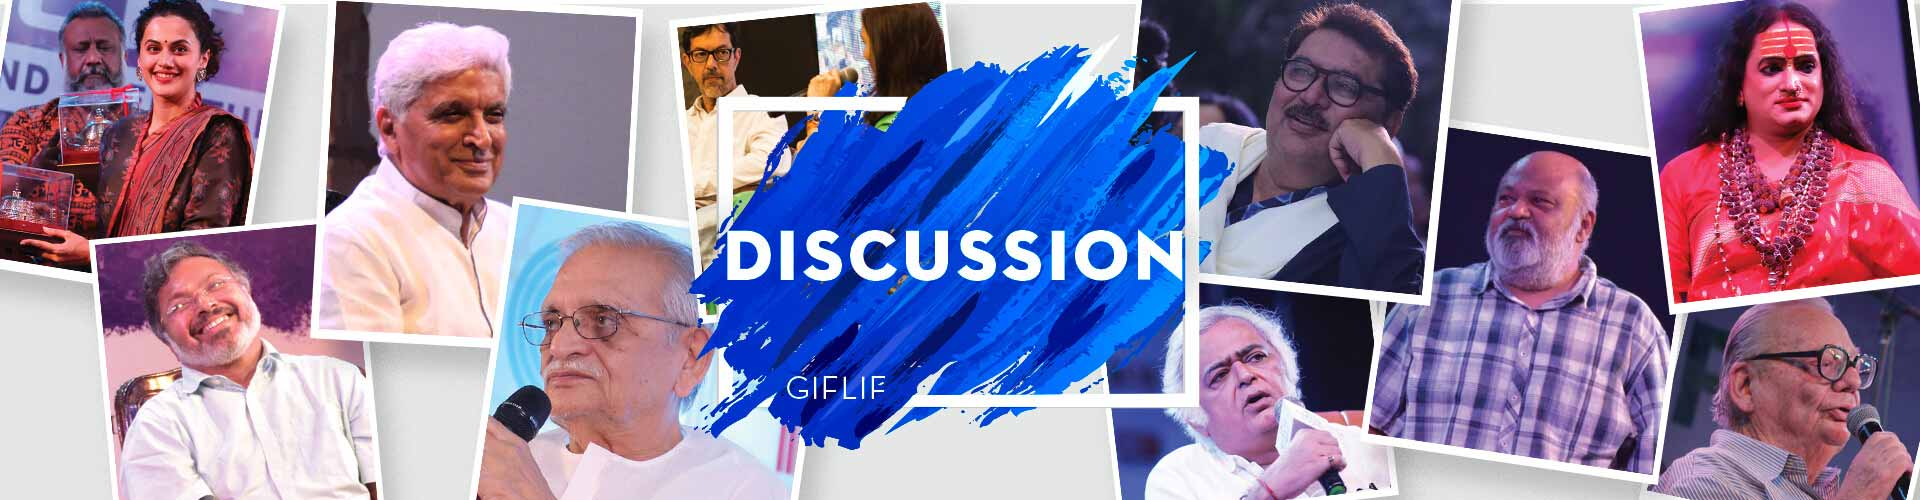 2-GIFLIF-Collage-(Discussion-Website)